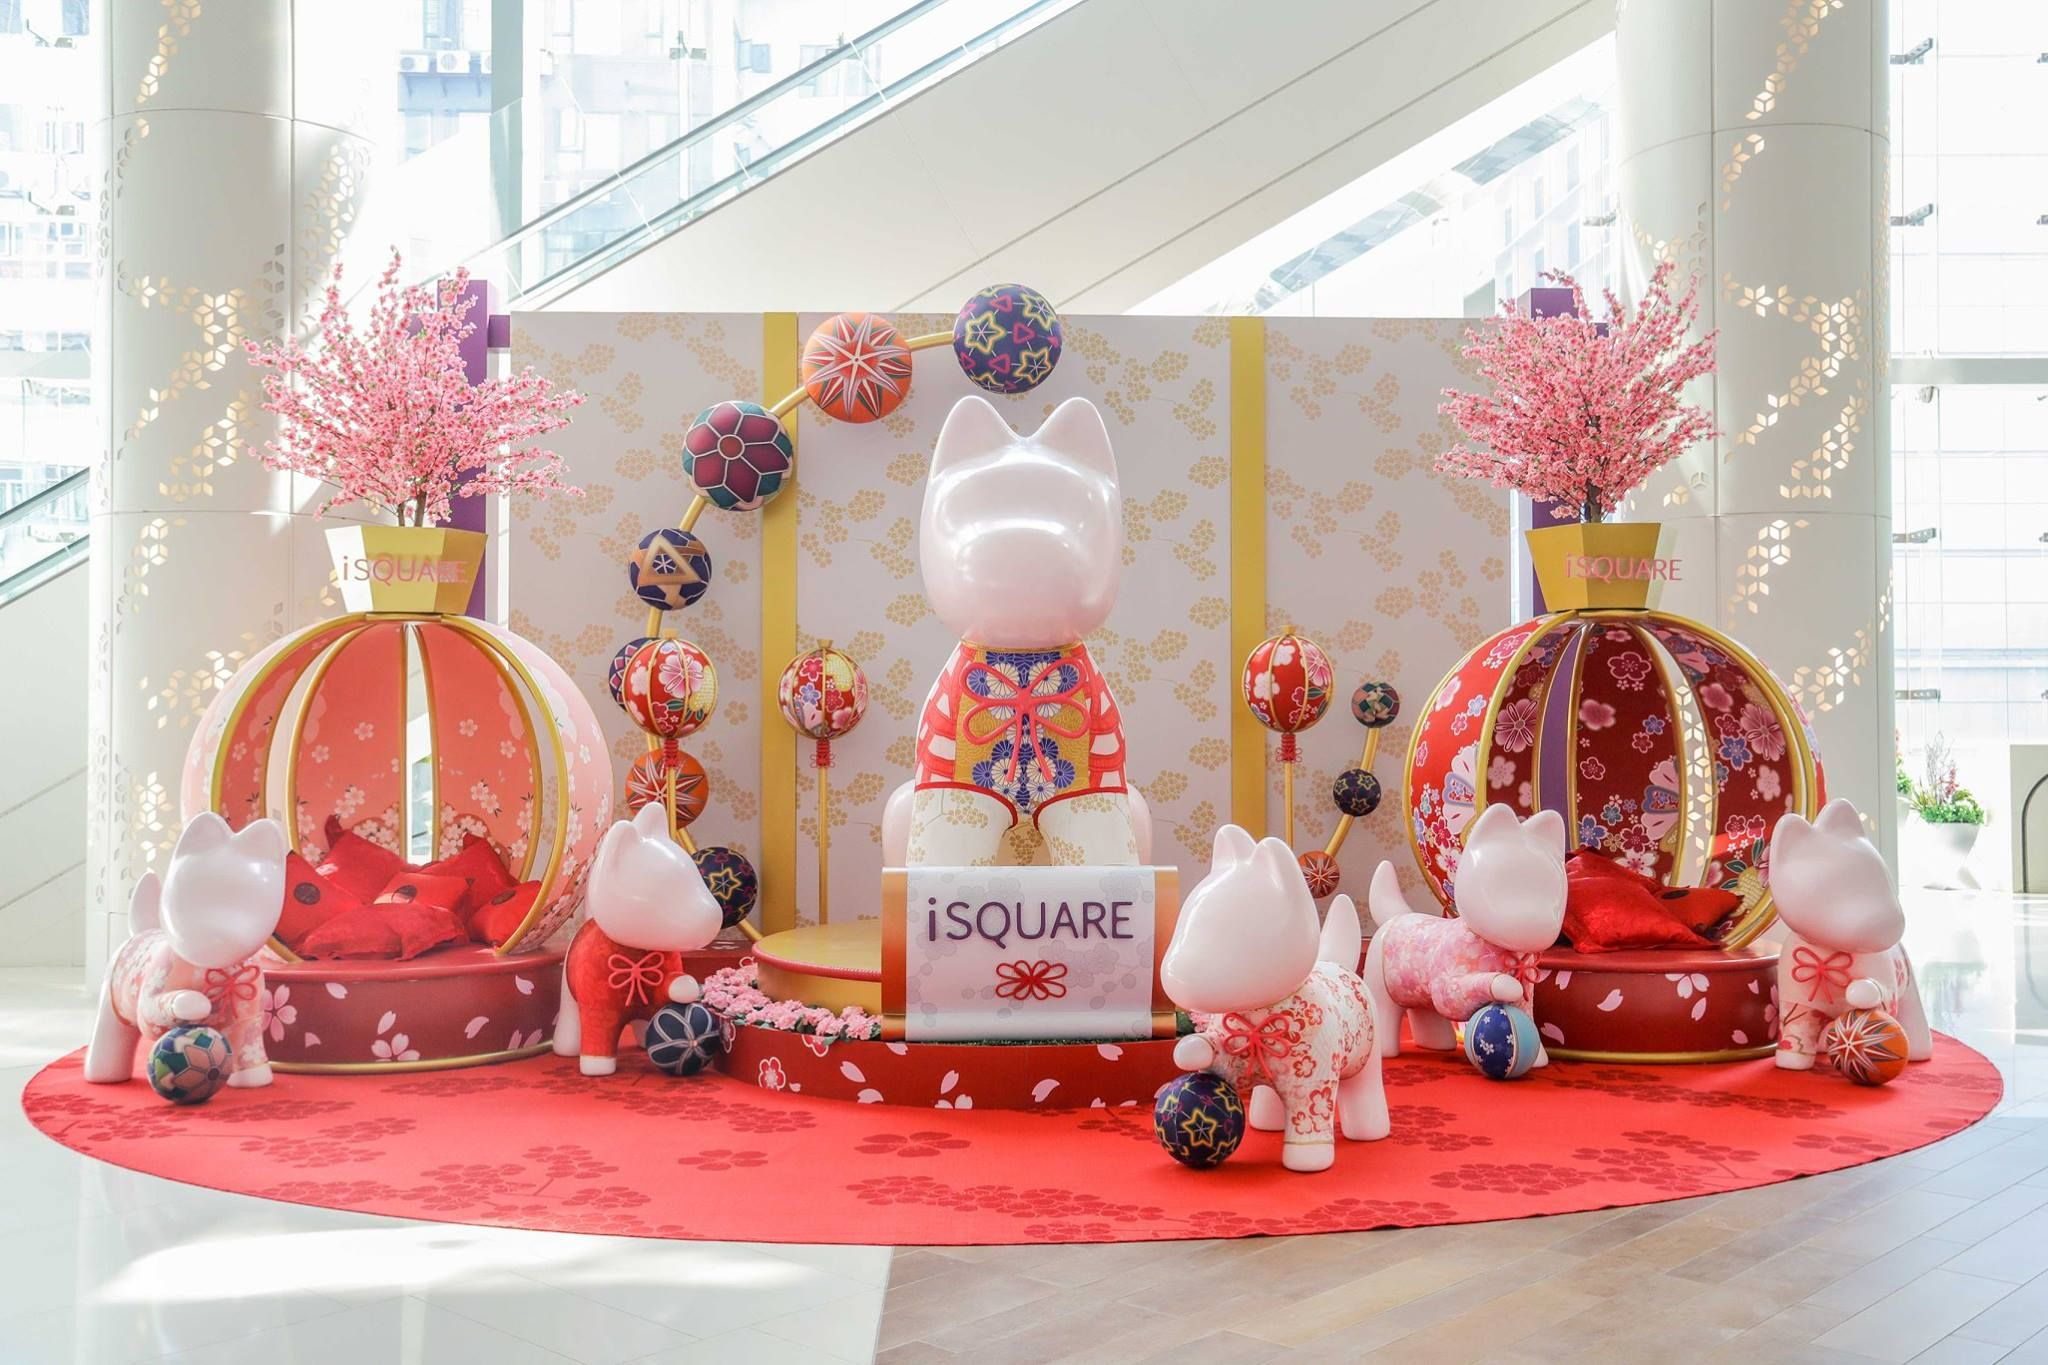 iSQUARE,HK_Lunar New Year2018_2 | Chinese new year ...